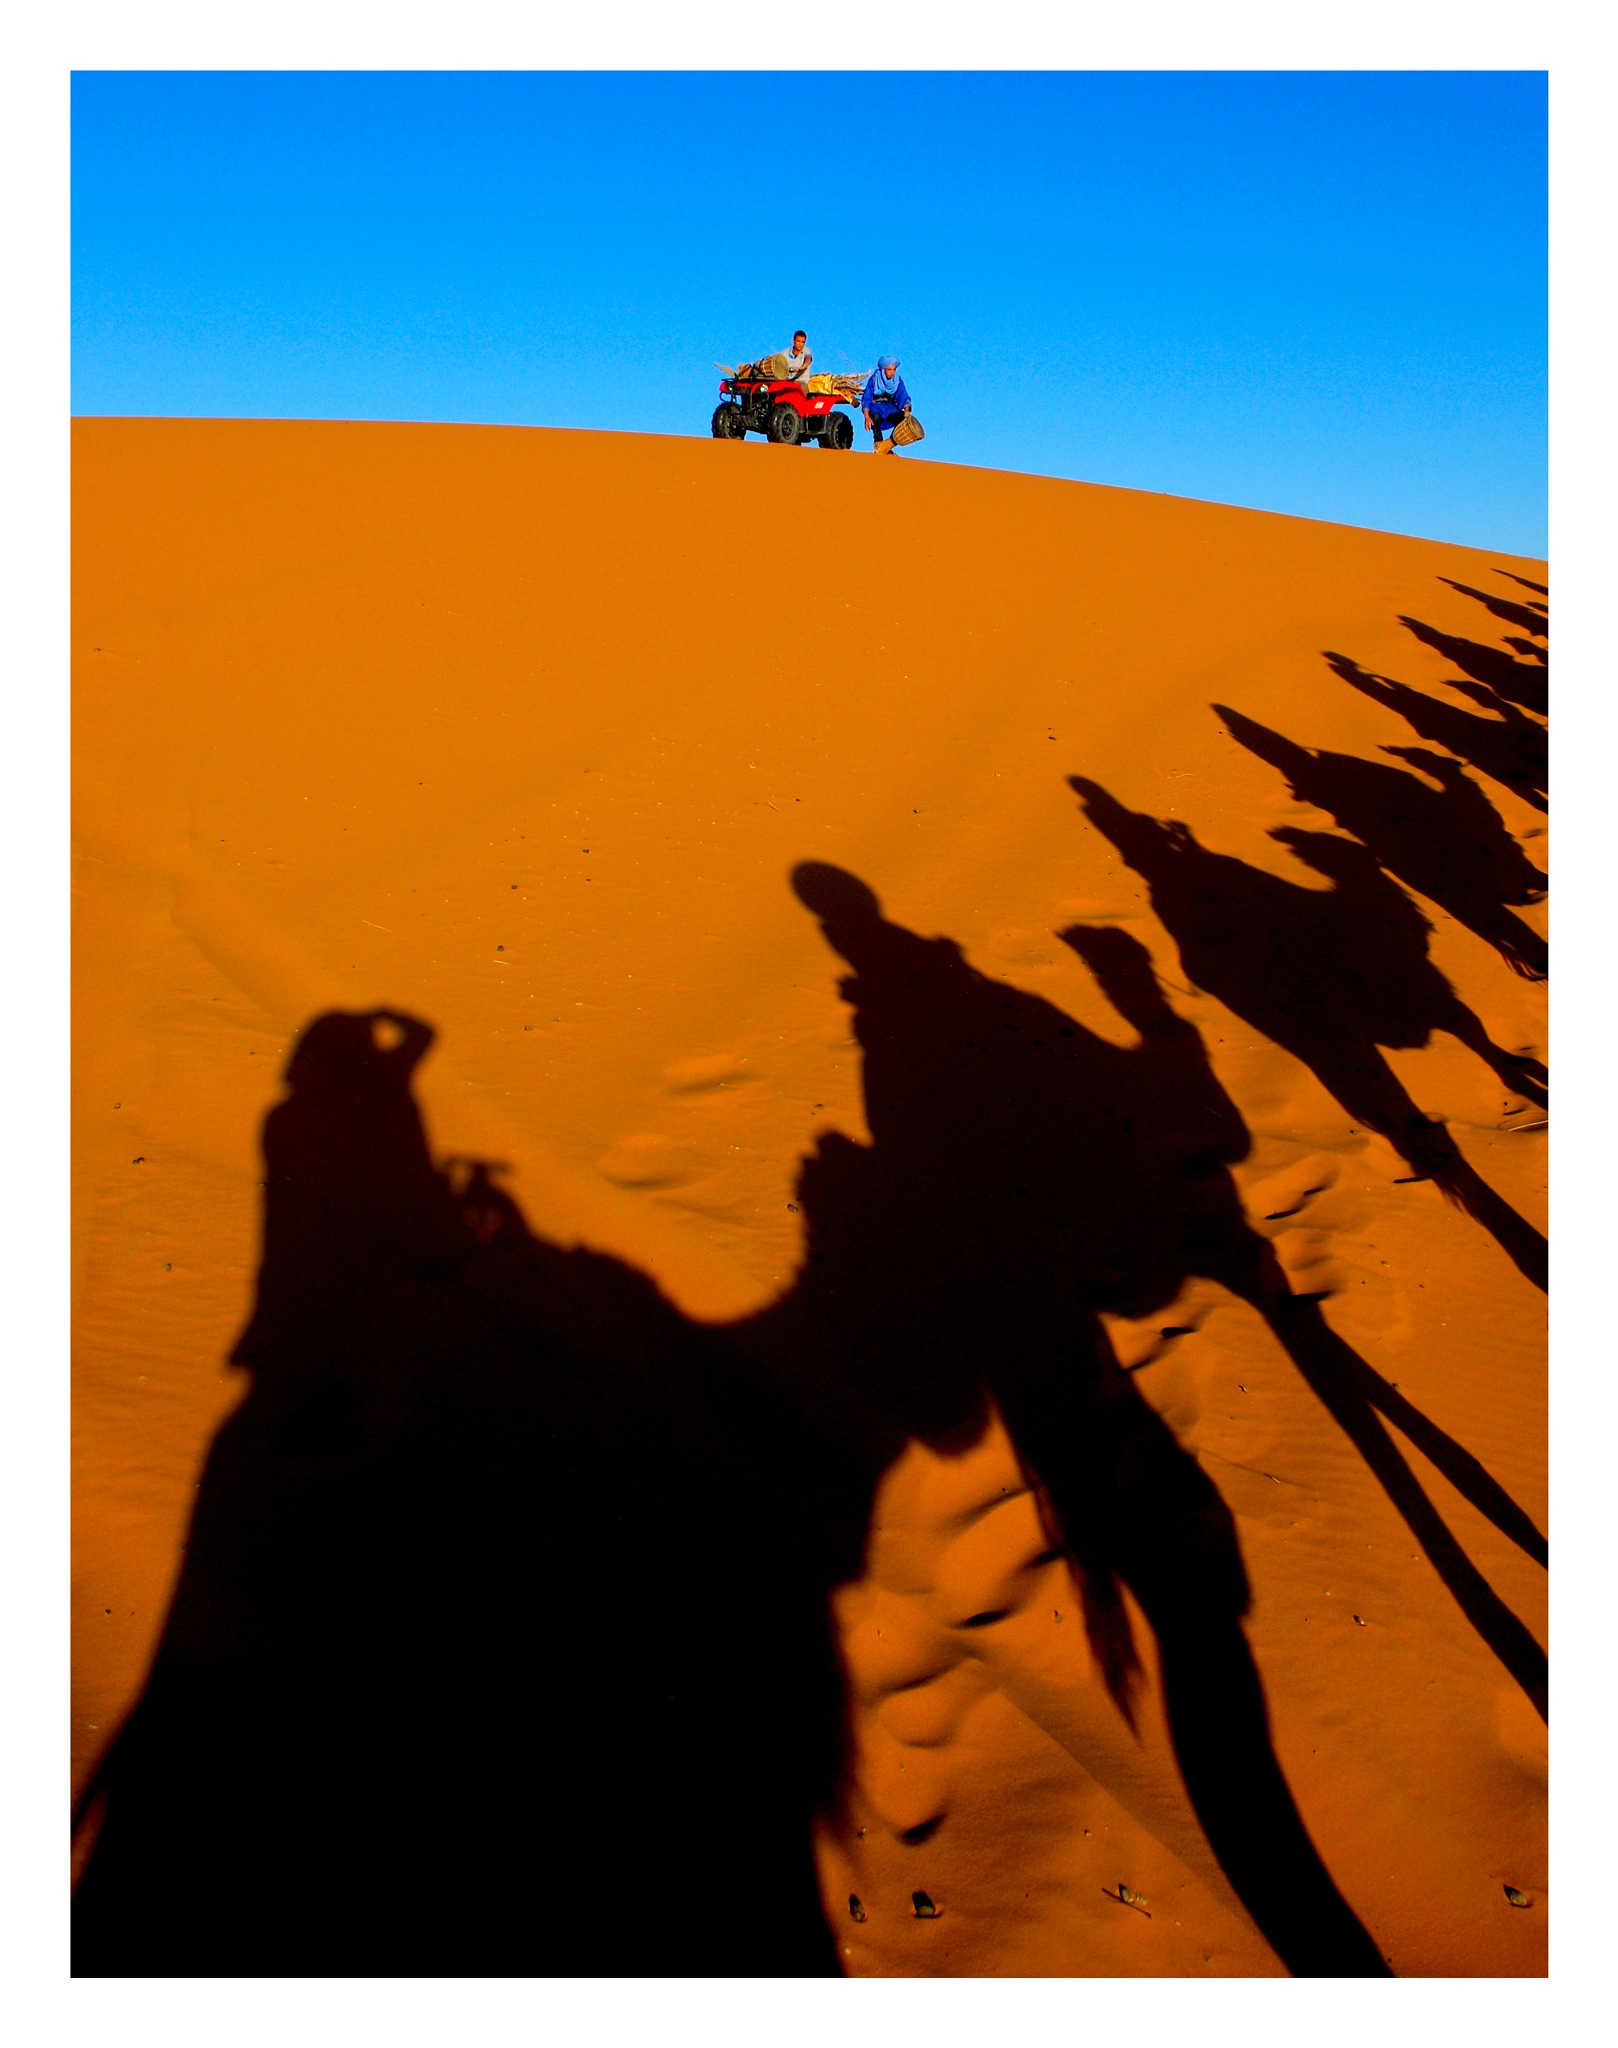 From the desert by AbdelAzim Altaghloby